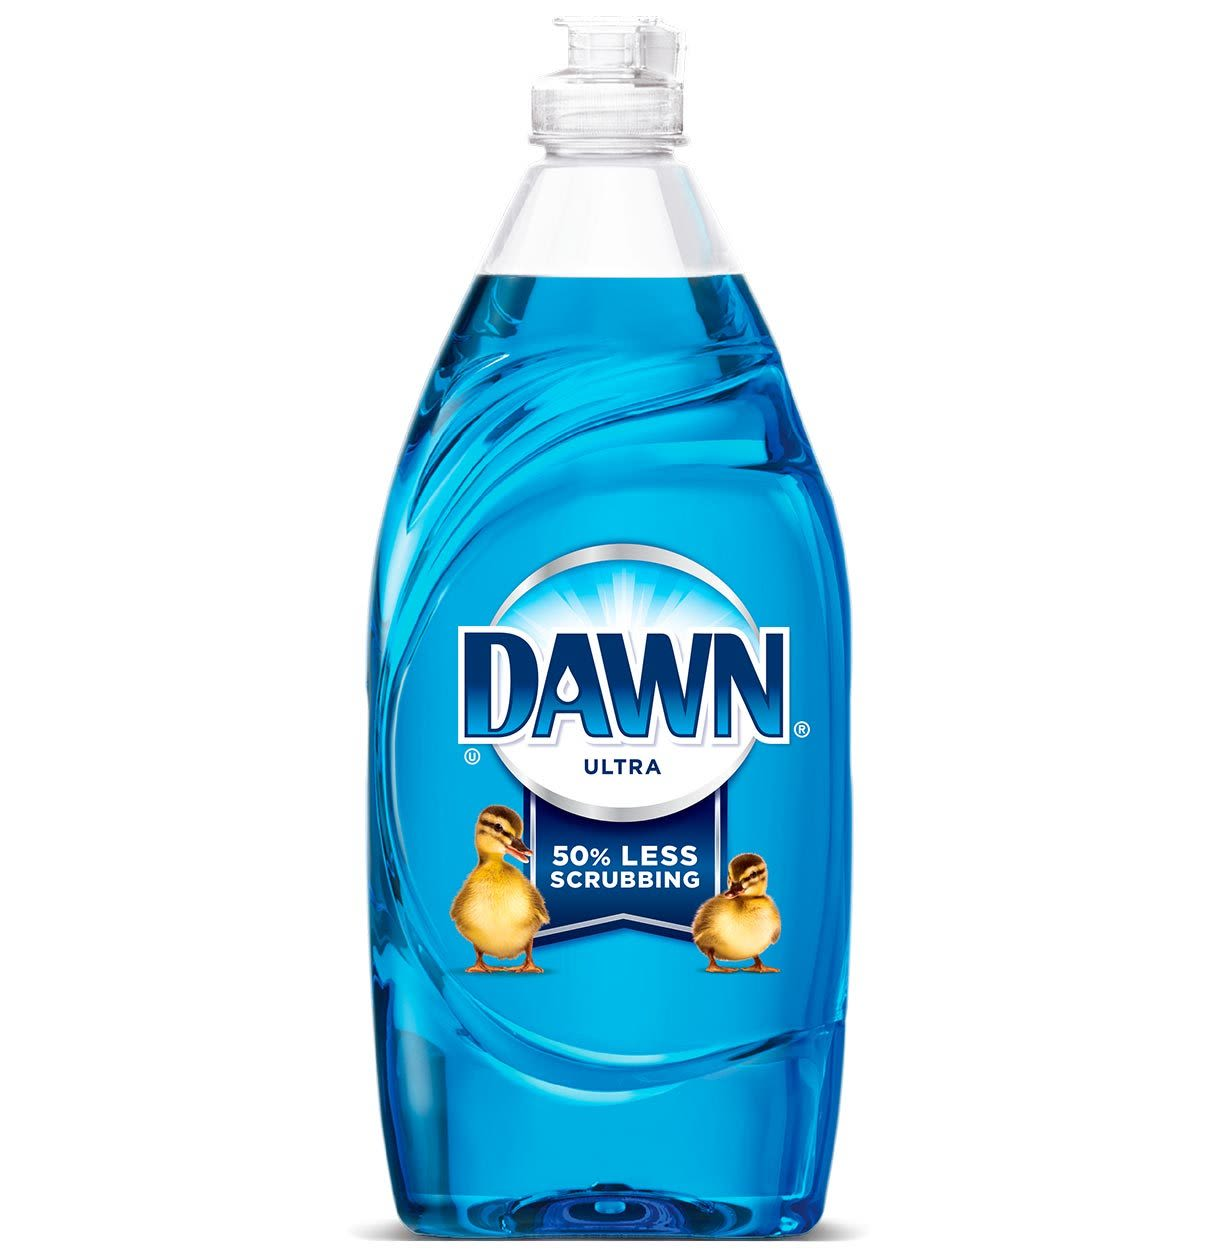 Dawn Original Dishwashing Liquid